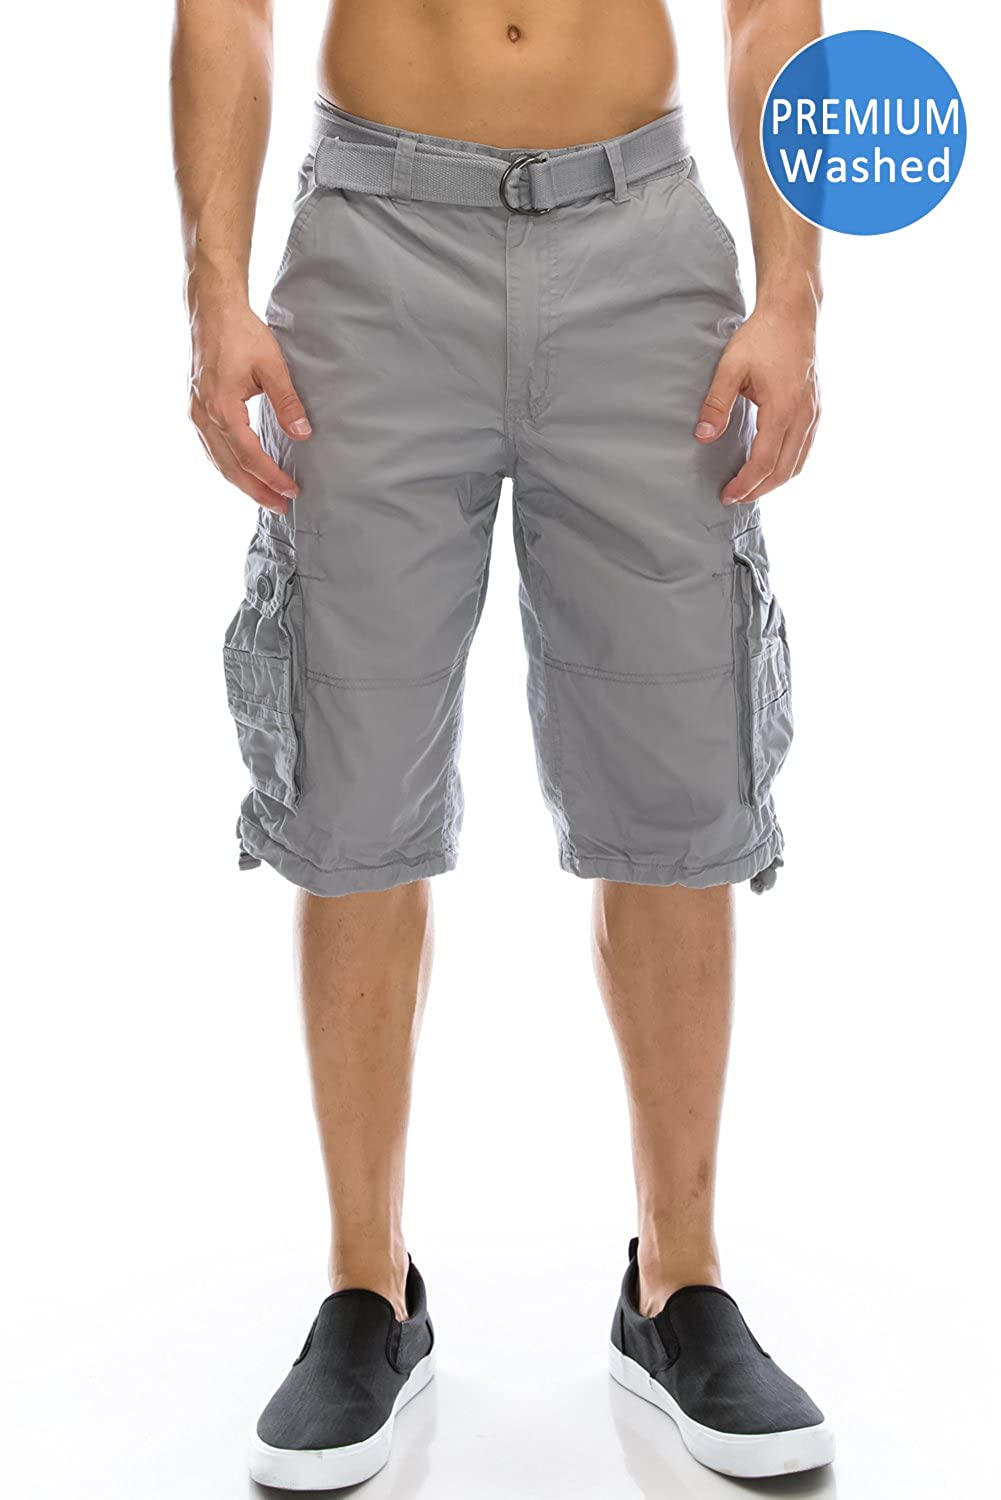 JC DISTRO Mens Hipster Hip Hop Belted Premium Washed Cargo Shorts (Big Size Upto 58)